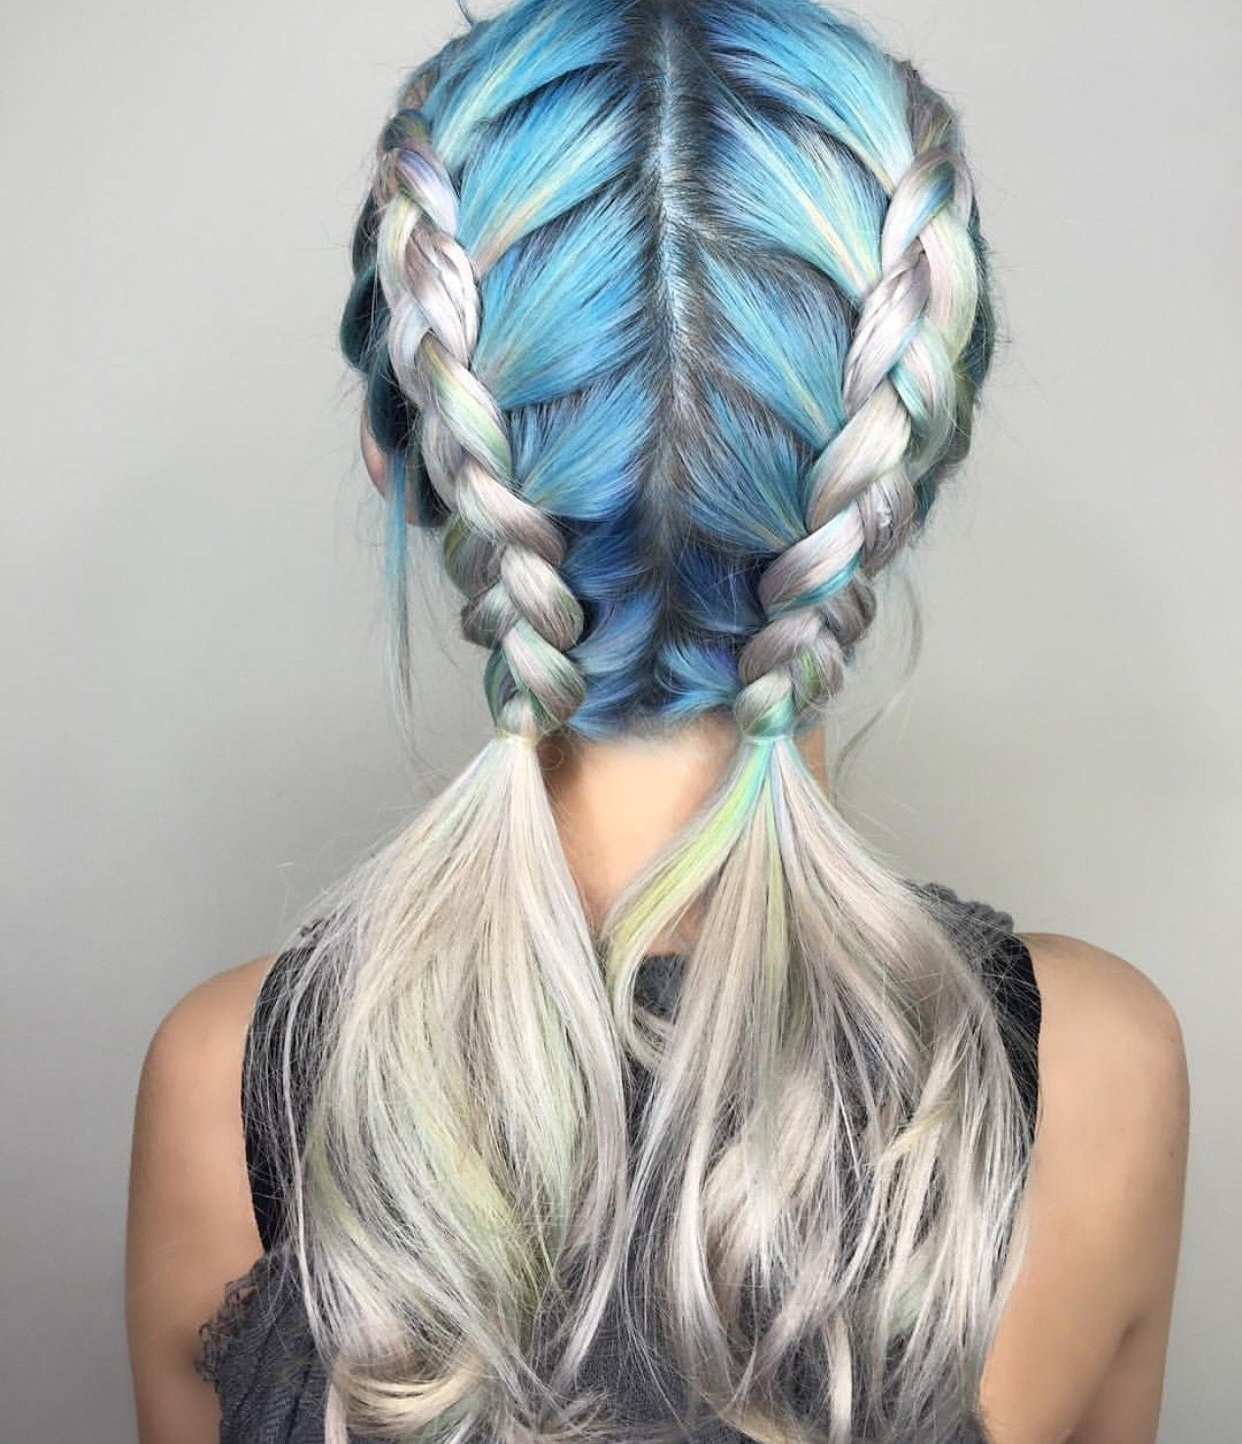 Most Recent Double Floating Braid Hairstyles With Metallic Blue And Silver Hair Color Design Dressed In Double Dutch (View 14 of 20)